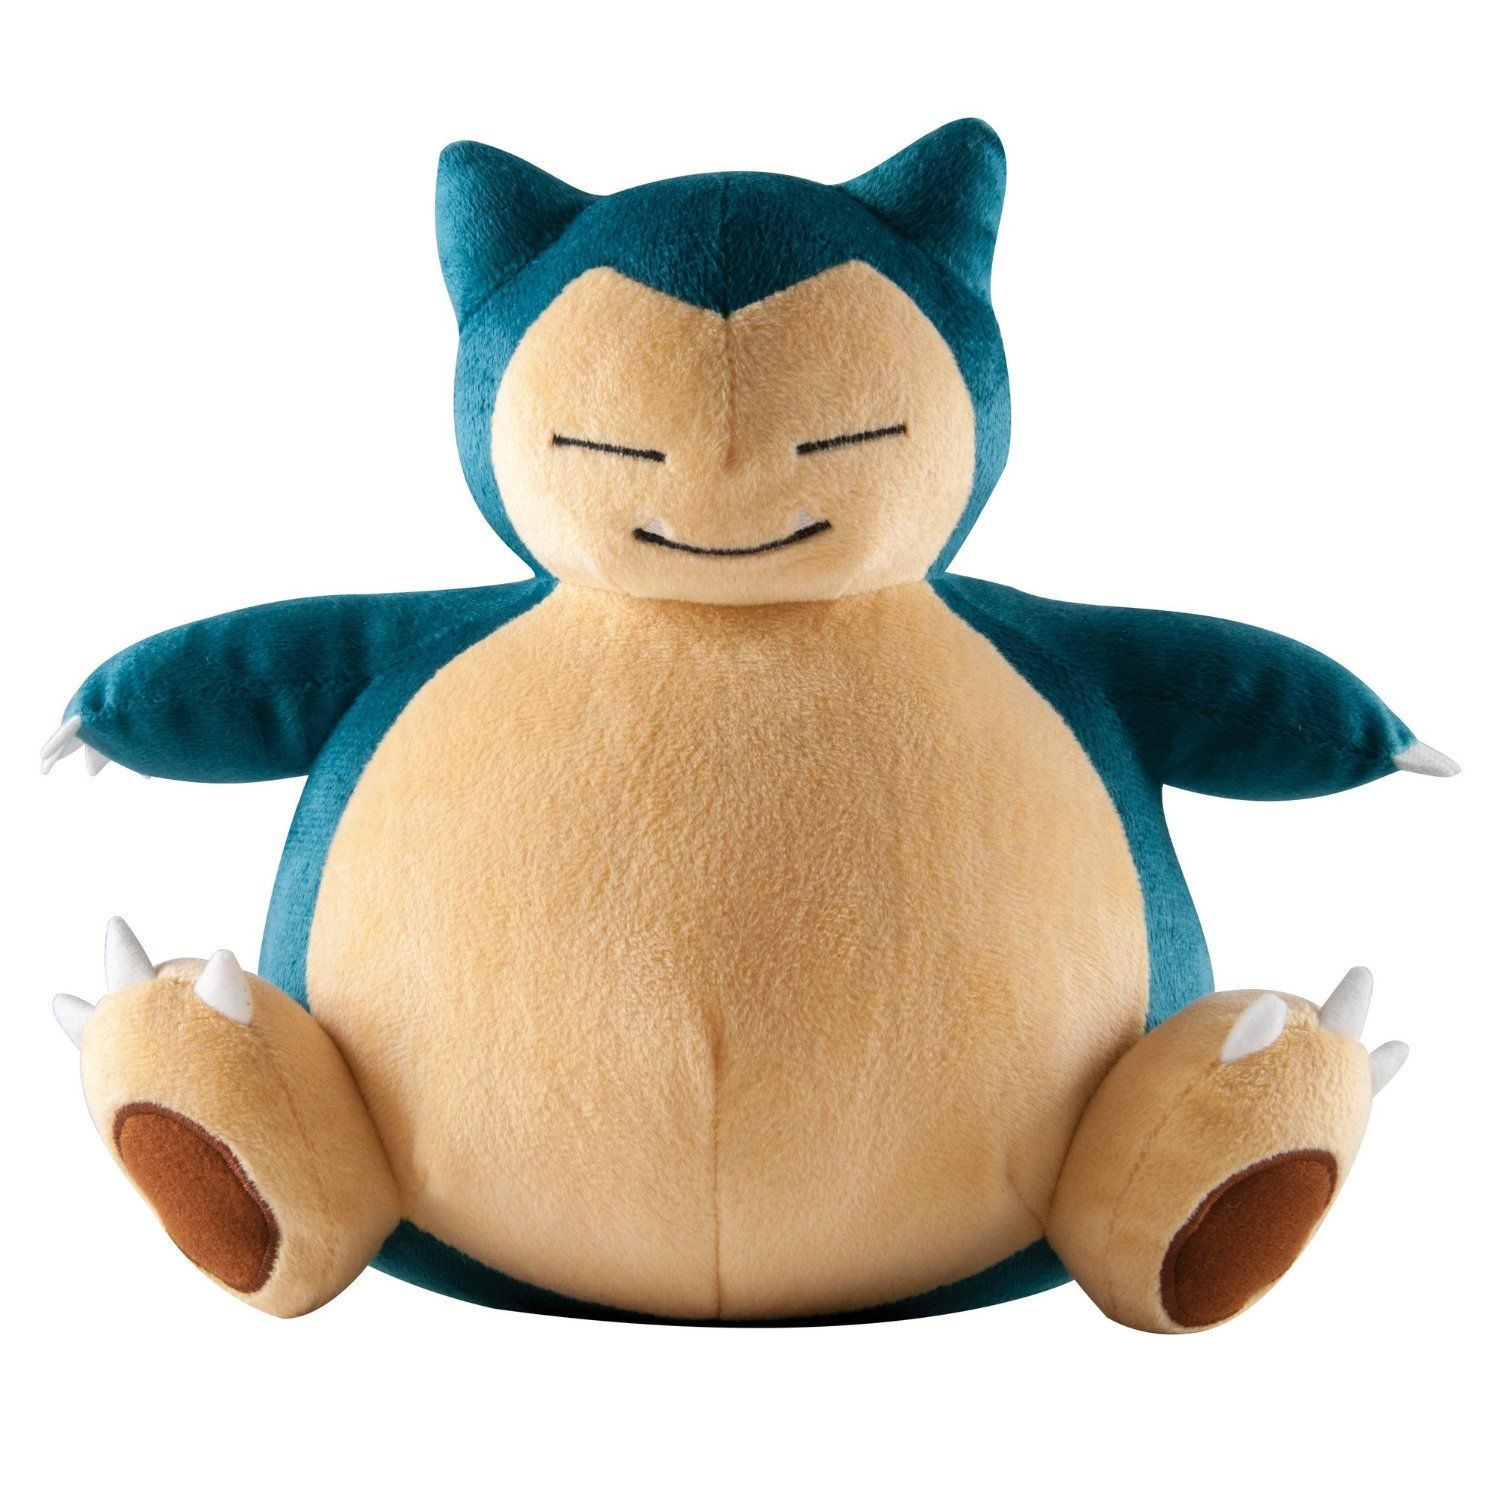 Pokémon Large Plush, Snorlax Toys & Games